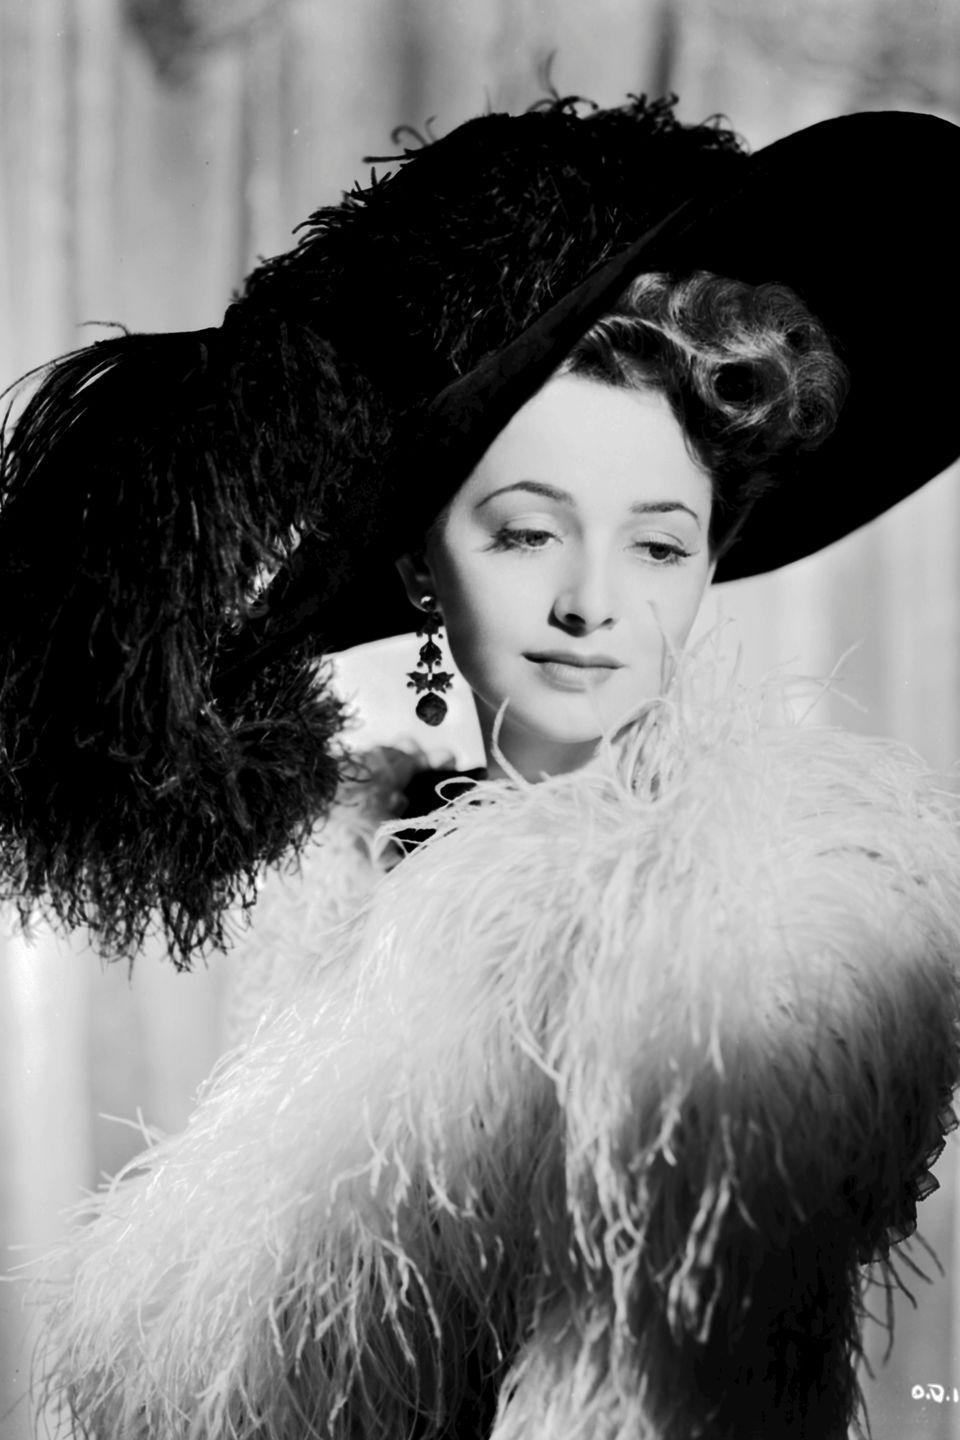 <p>Donning a feathered dress and hat for Warner Bros. Studios in a portrait shot by George Hurrell. </p>